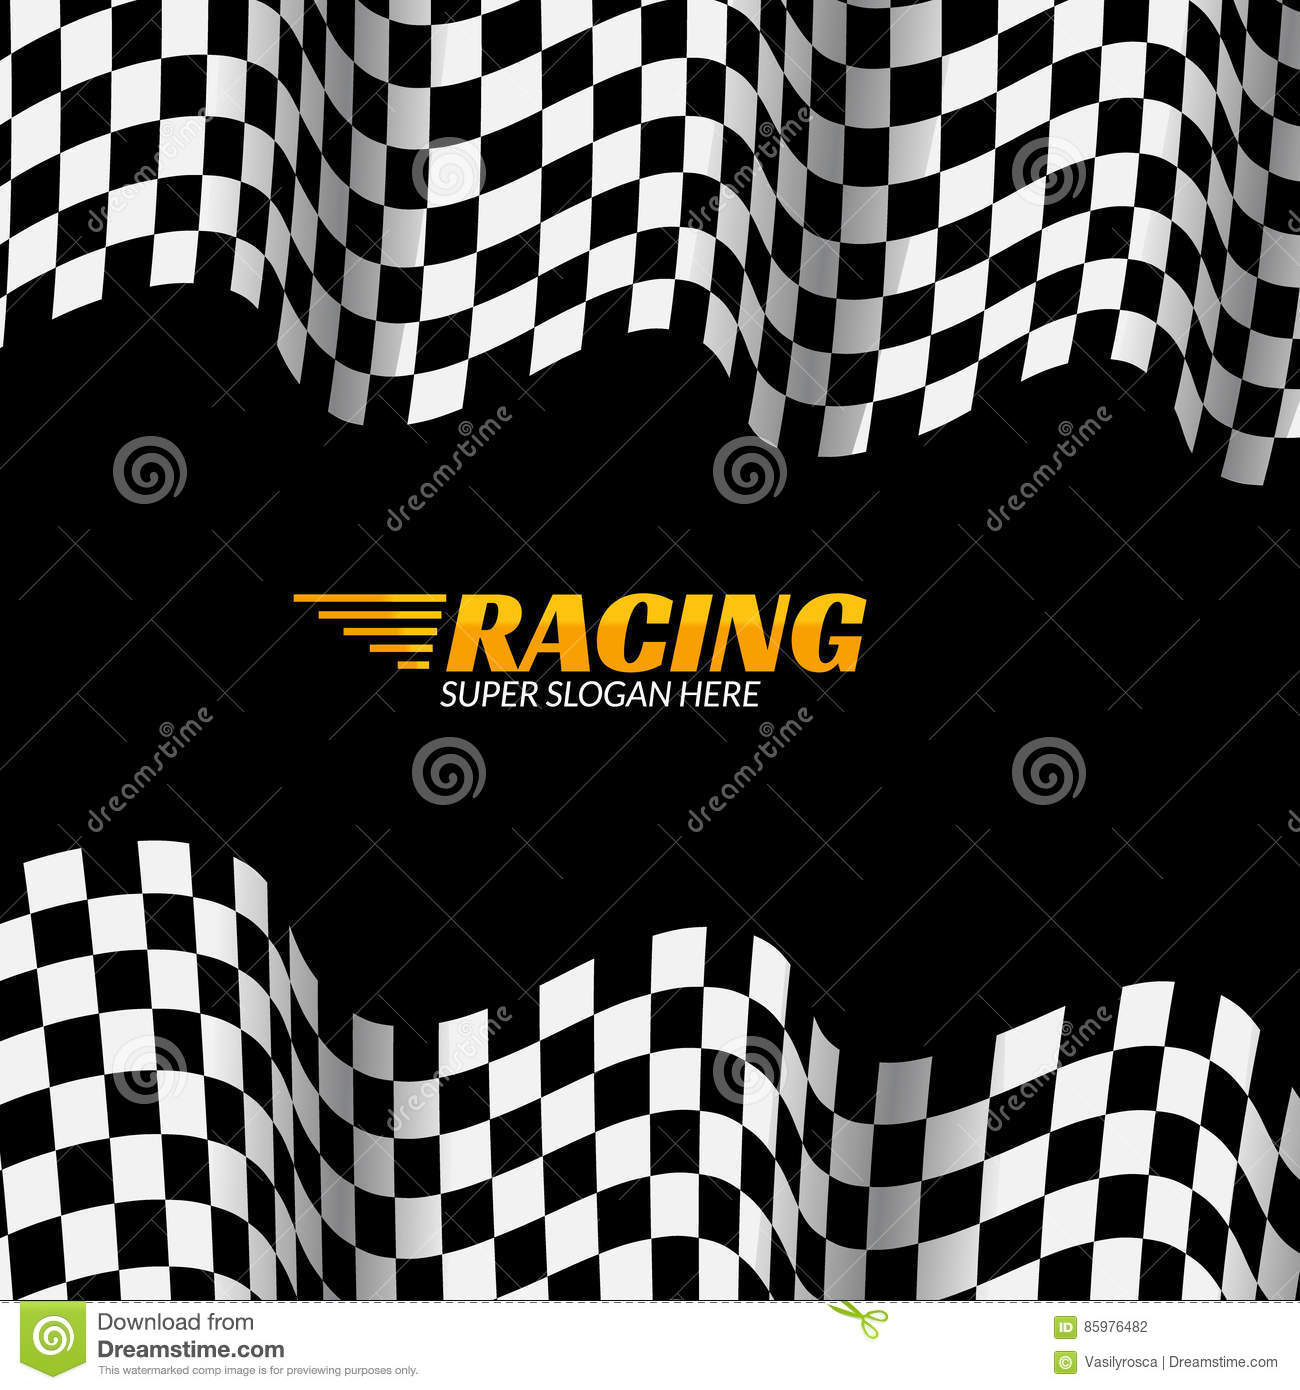 Banner Chequered Flag Stock Illustrations 582 Banner Chequered Flag Stock Illustrations Vectors Clipart Dreamstime